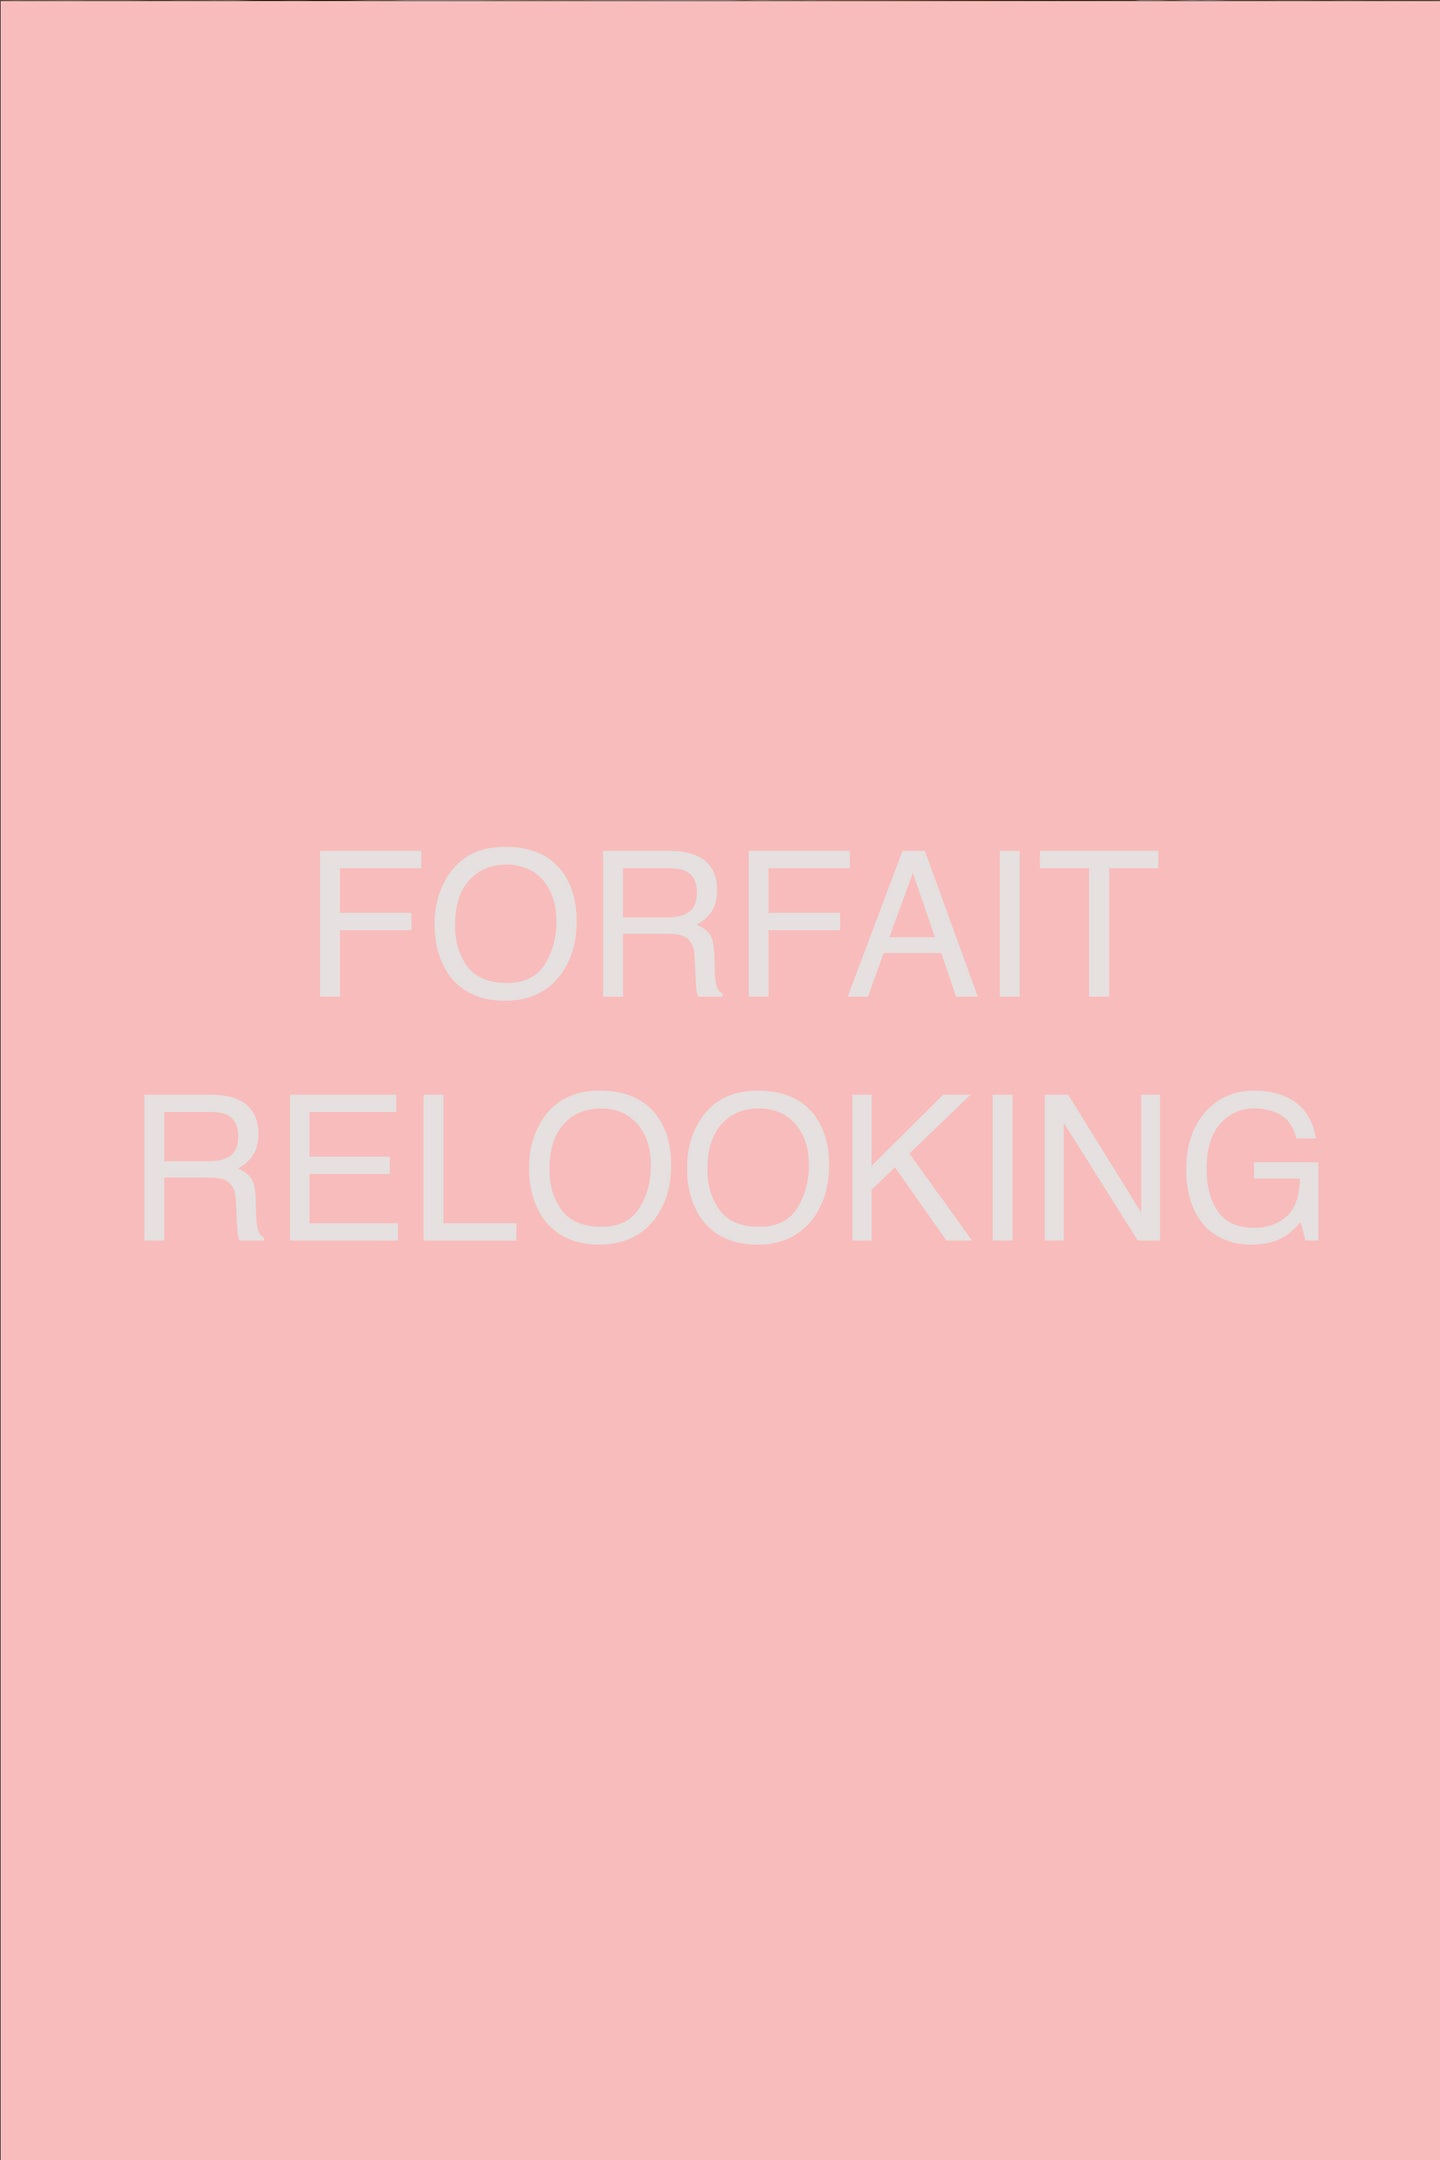 FORFAIT RELOOKING